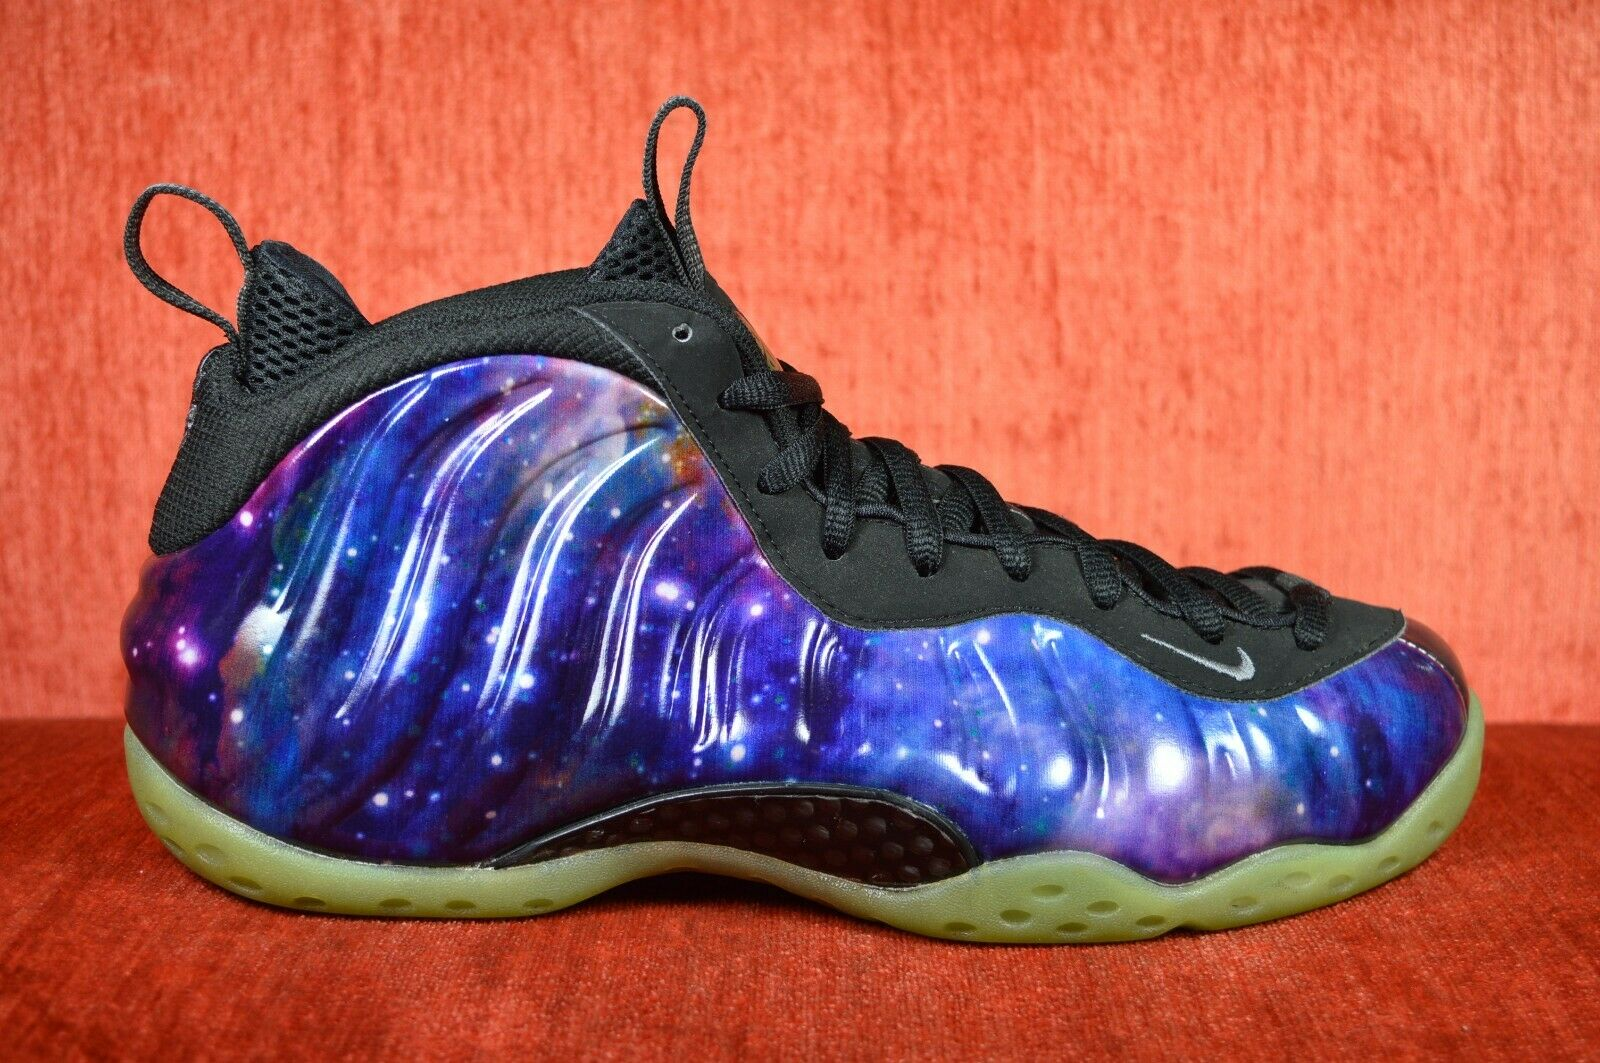 CLEAN NIKE AIR FOAMPOSITE ONE NRG USED SIZE 9.5 GALAXY 521286 800